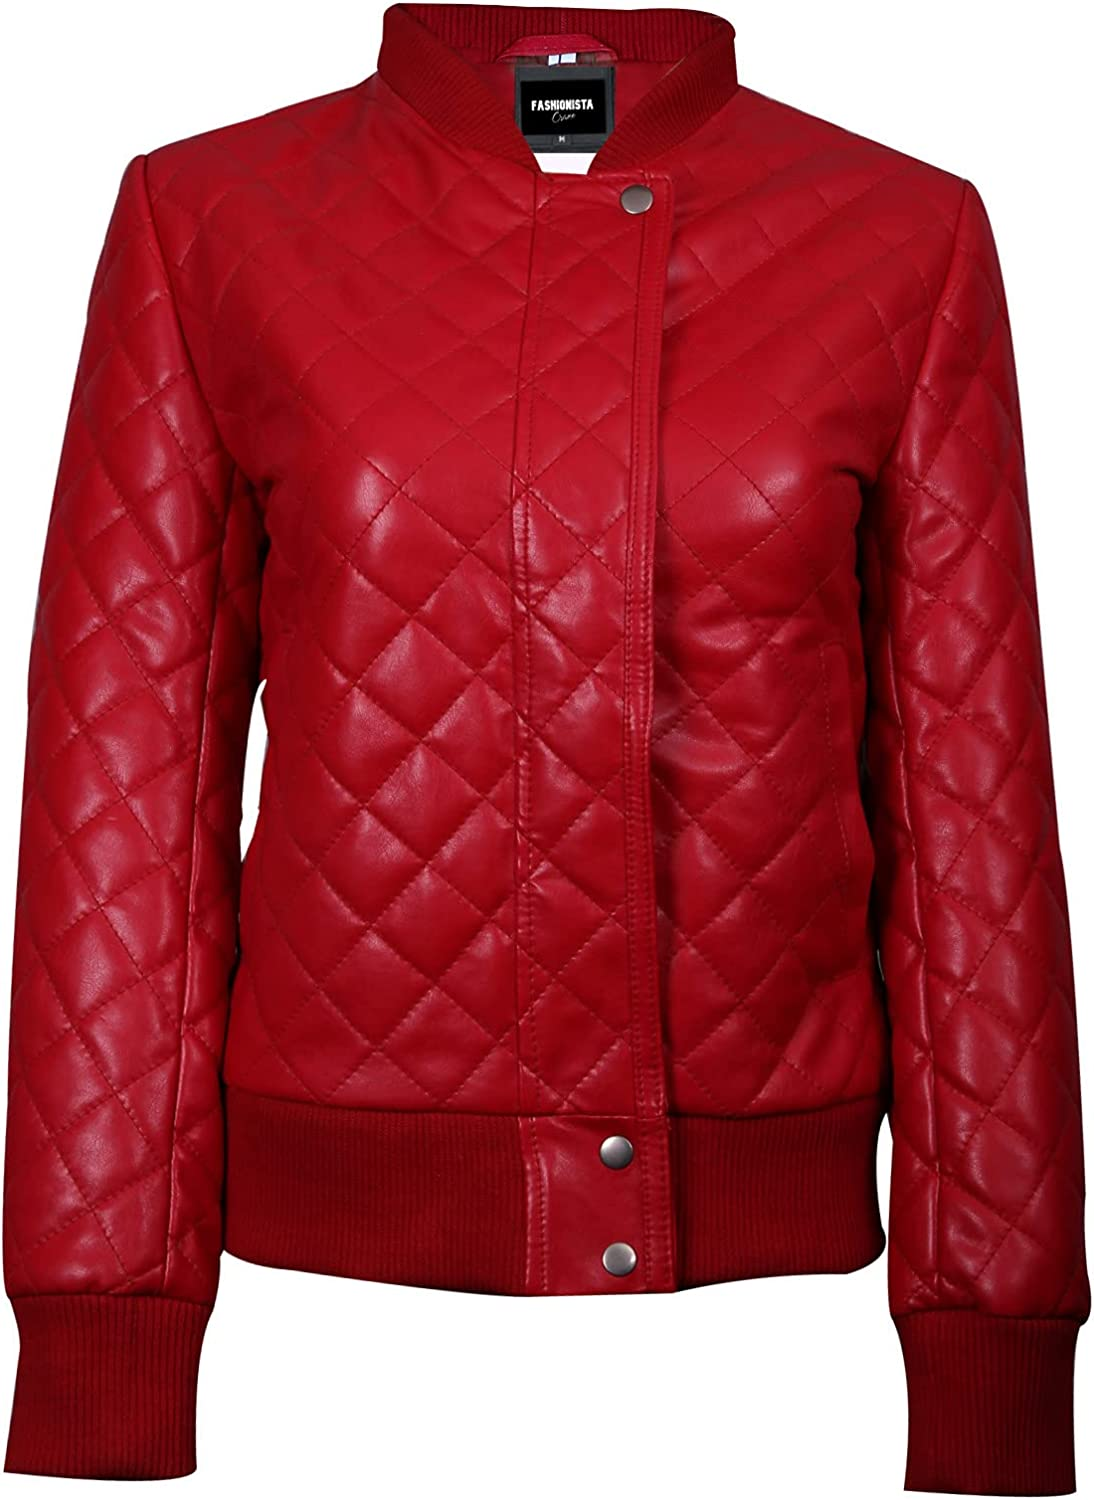 Fashionsta Craze Red Quilted Bomber Leather Jacket for Women -Quilted Leather Jacket